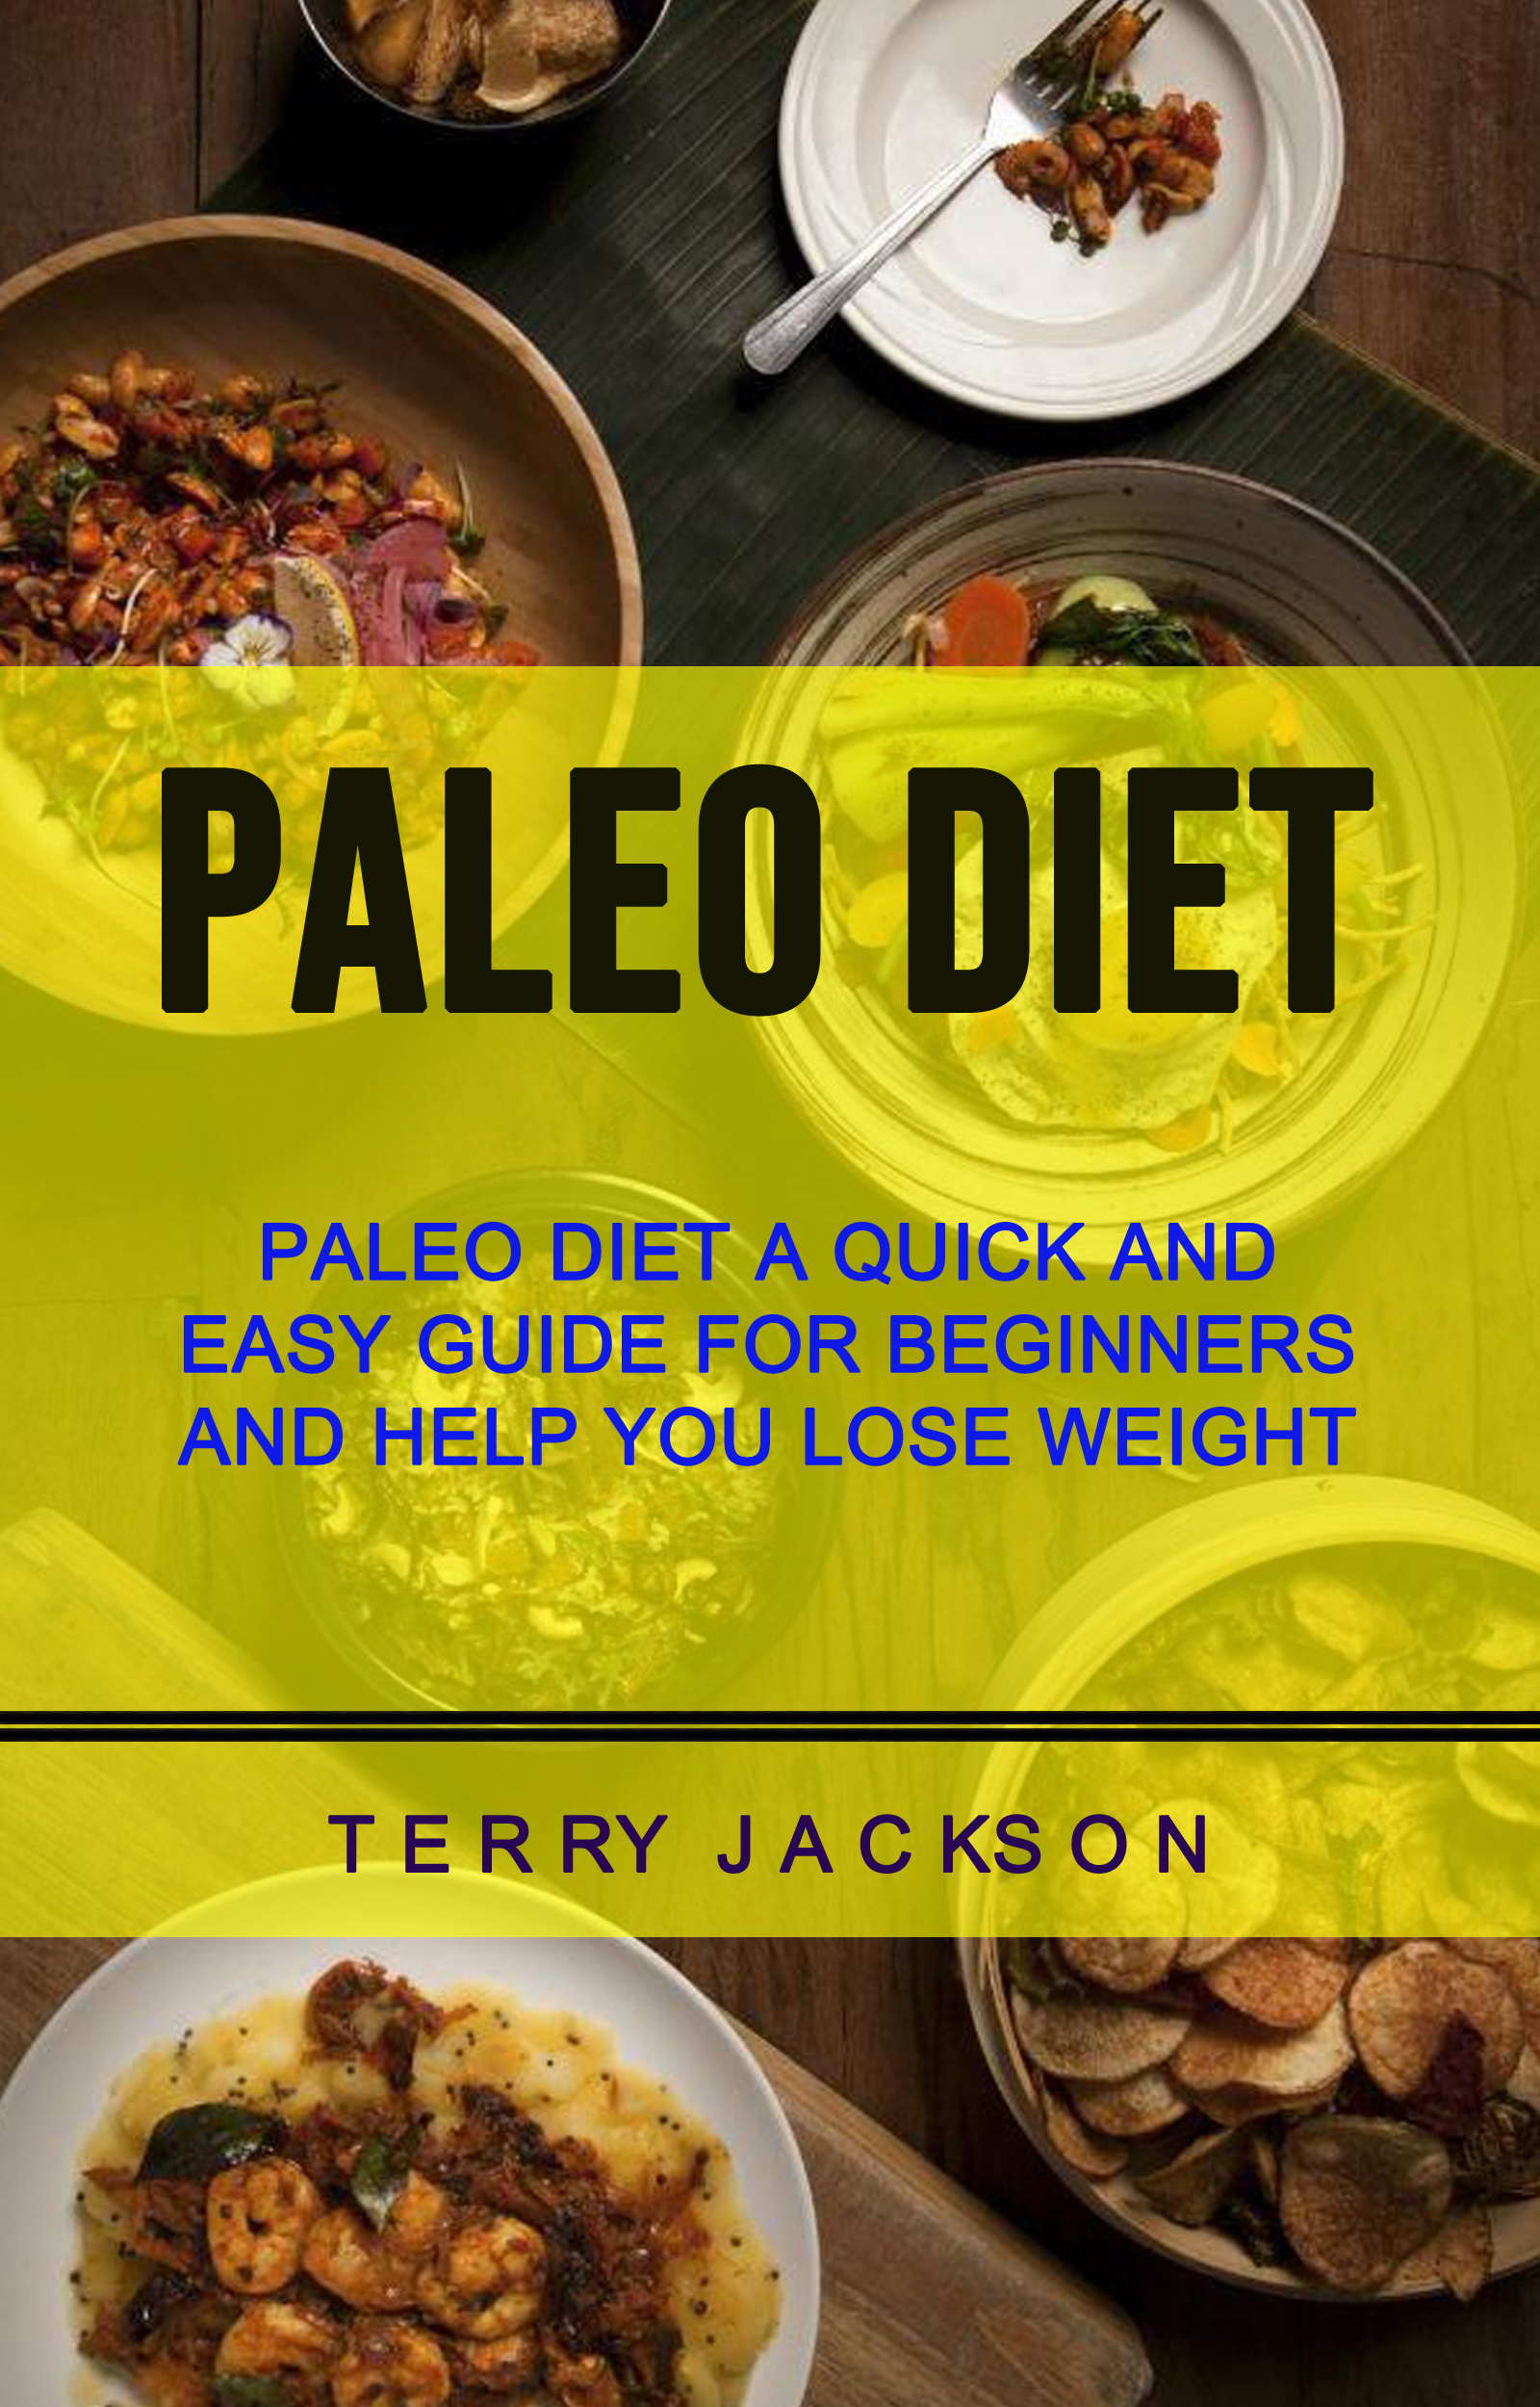 Paleo diet: paleo diet a quick and easy guide for beginners and help you lose weight